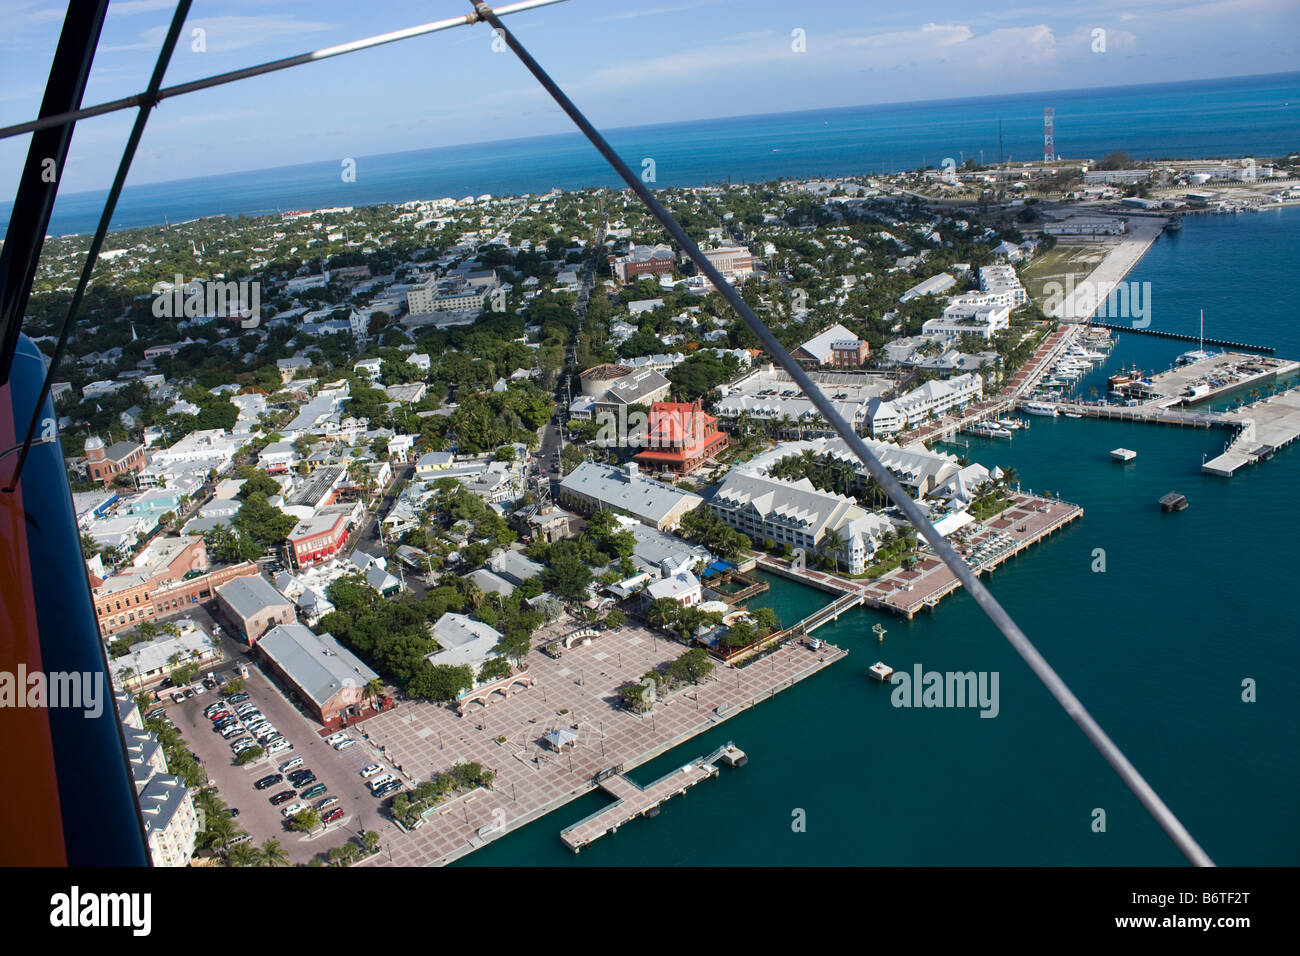 Aerial view of Mallory Square in Key West Florida - Stock Image